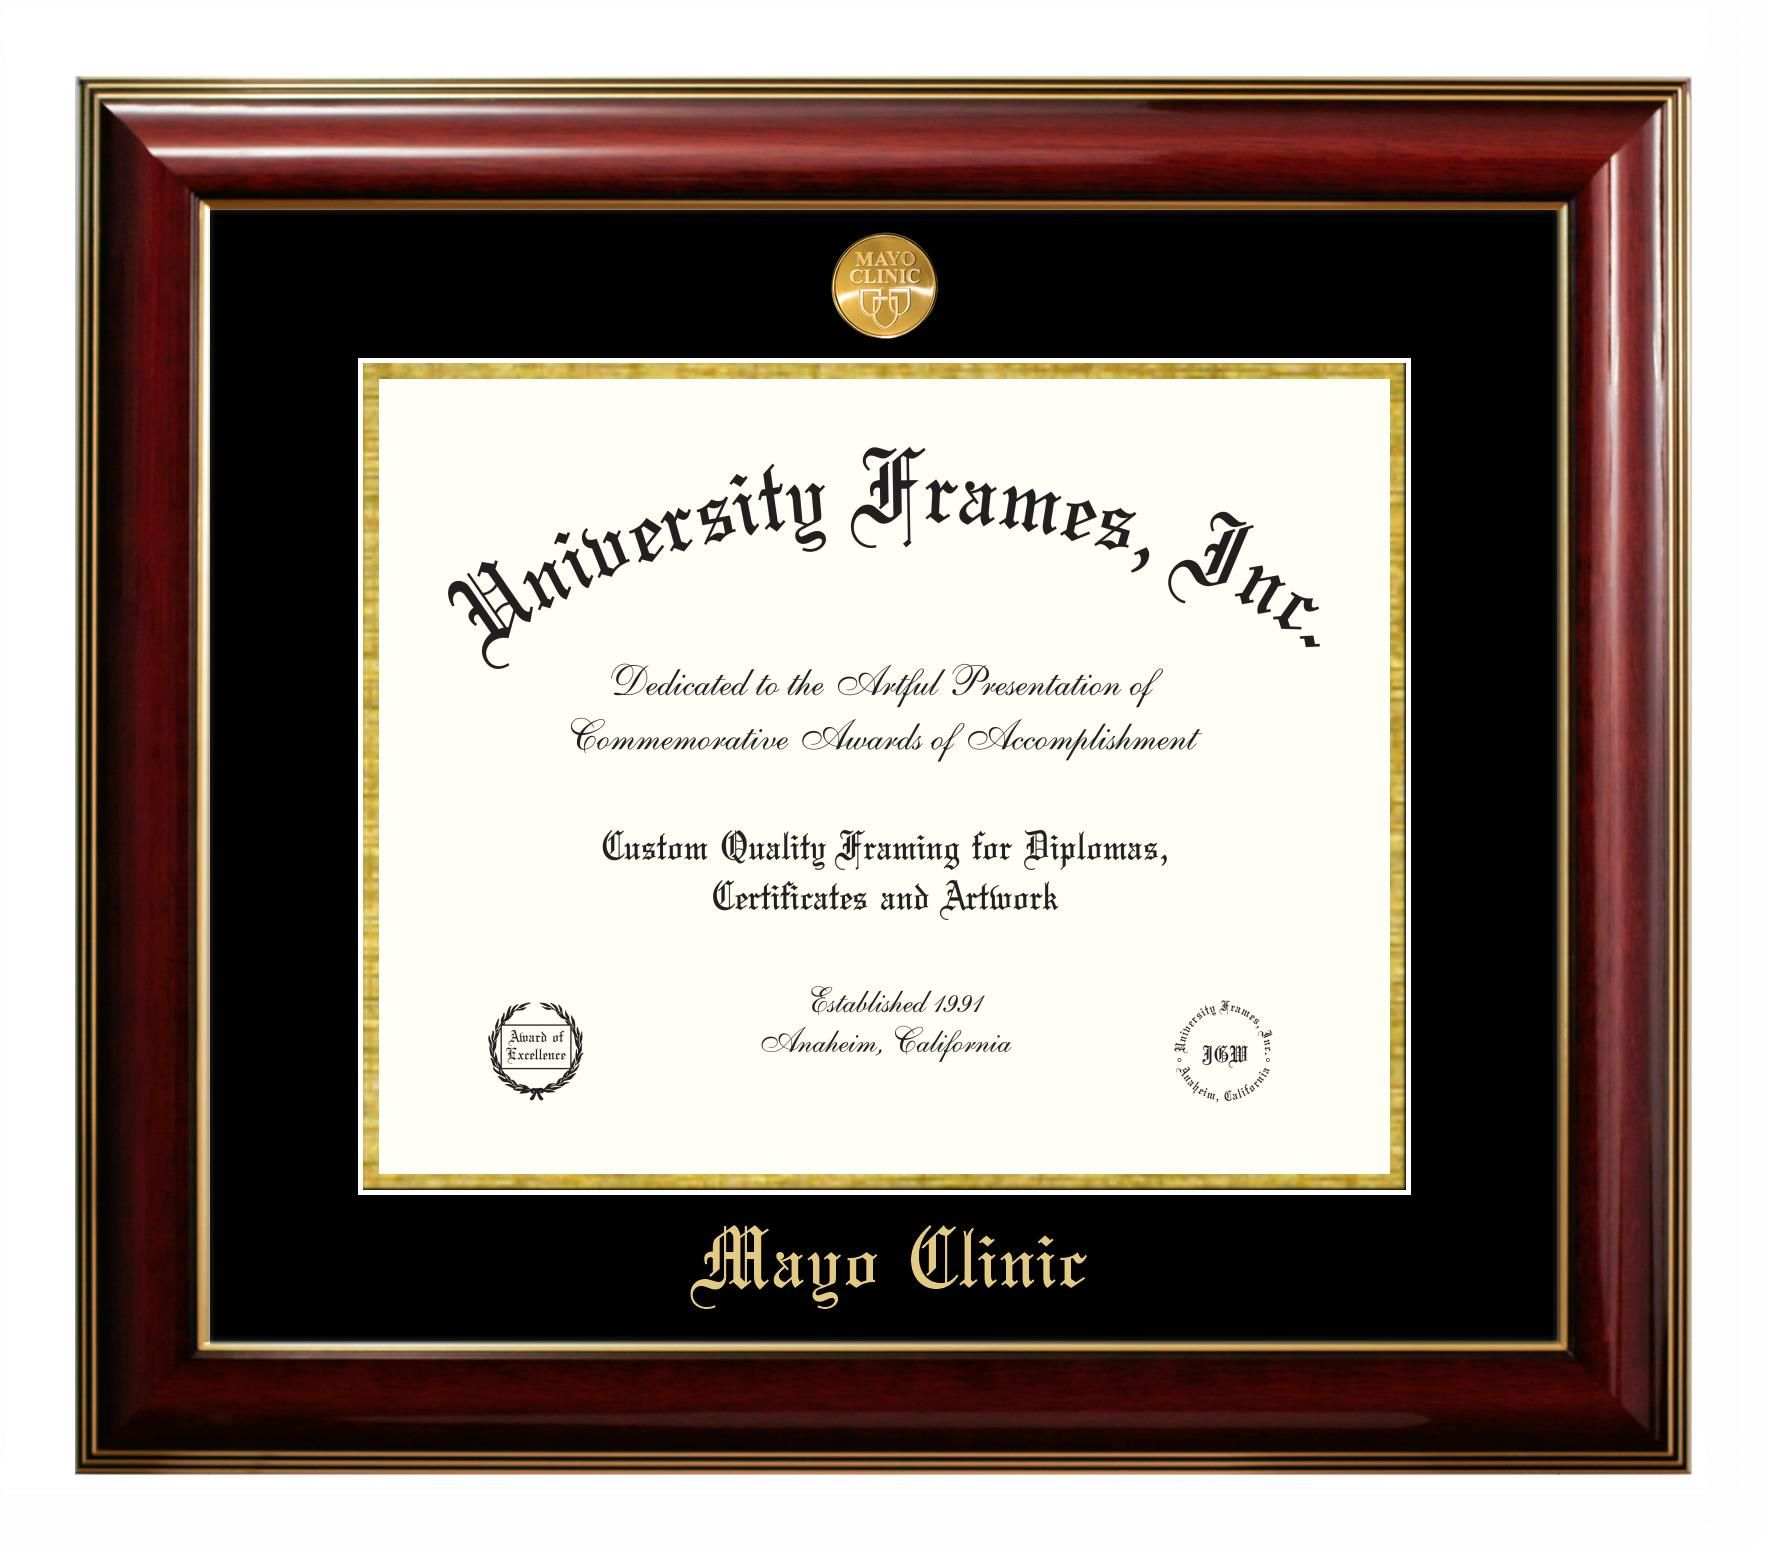 Style Diploma Name Imprint Mayo Clinic Document Size 11 H X 14 W Moulding Classic Mahogany With Gold Trim Primary Mat Diploma Frame Graduation Frame Frame